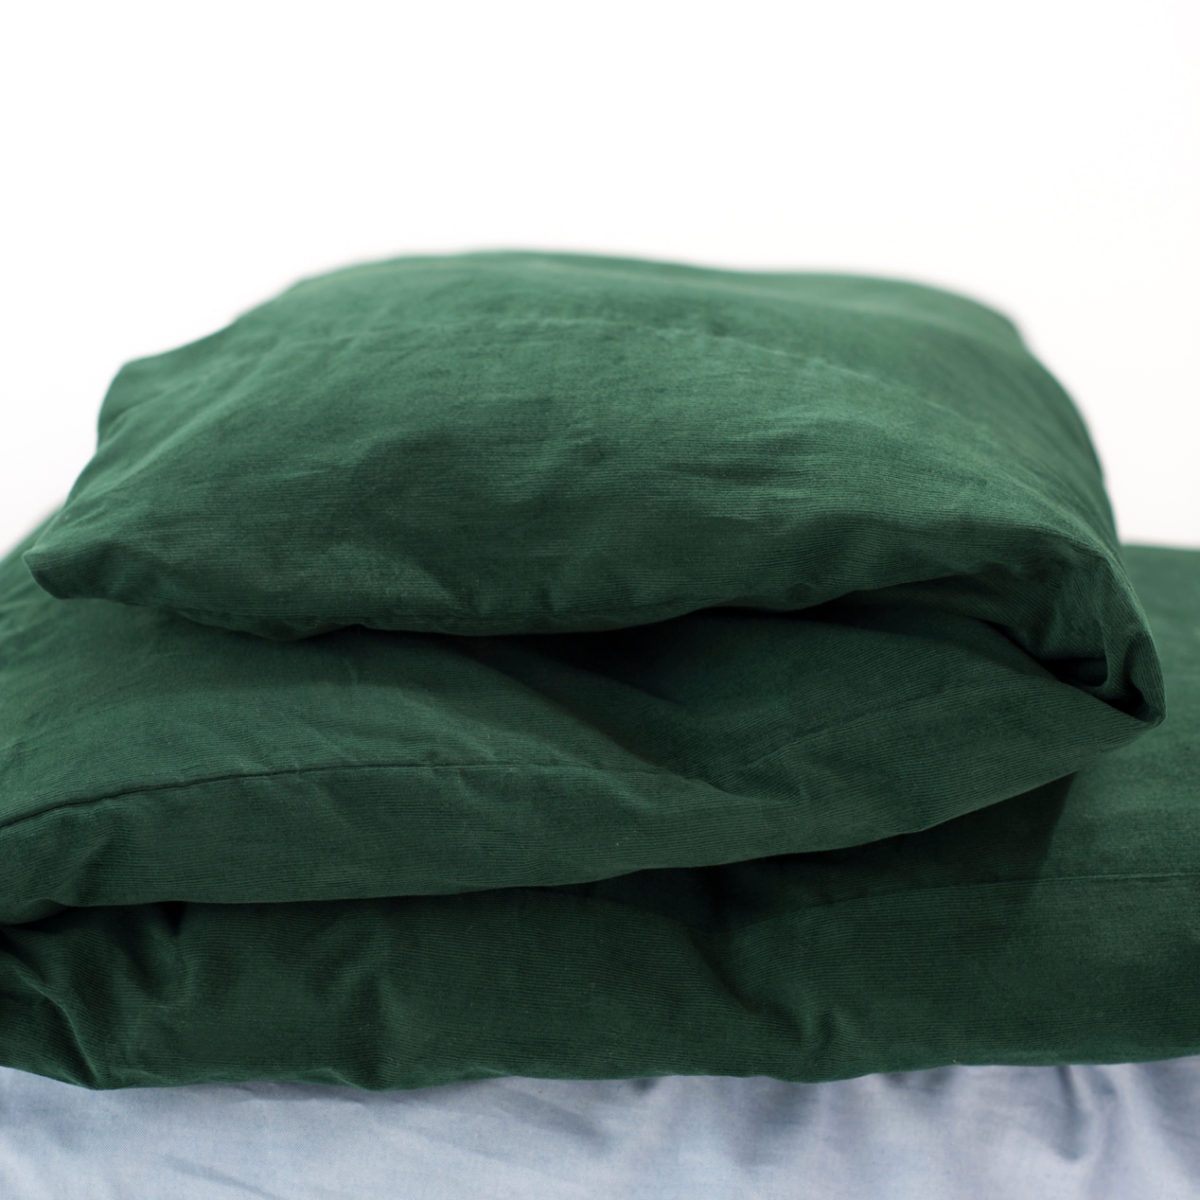 Charlie's Original Duvet Cover Green dorm room bedding